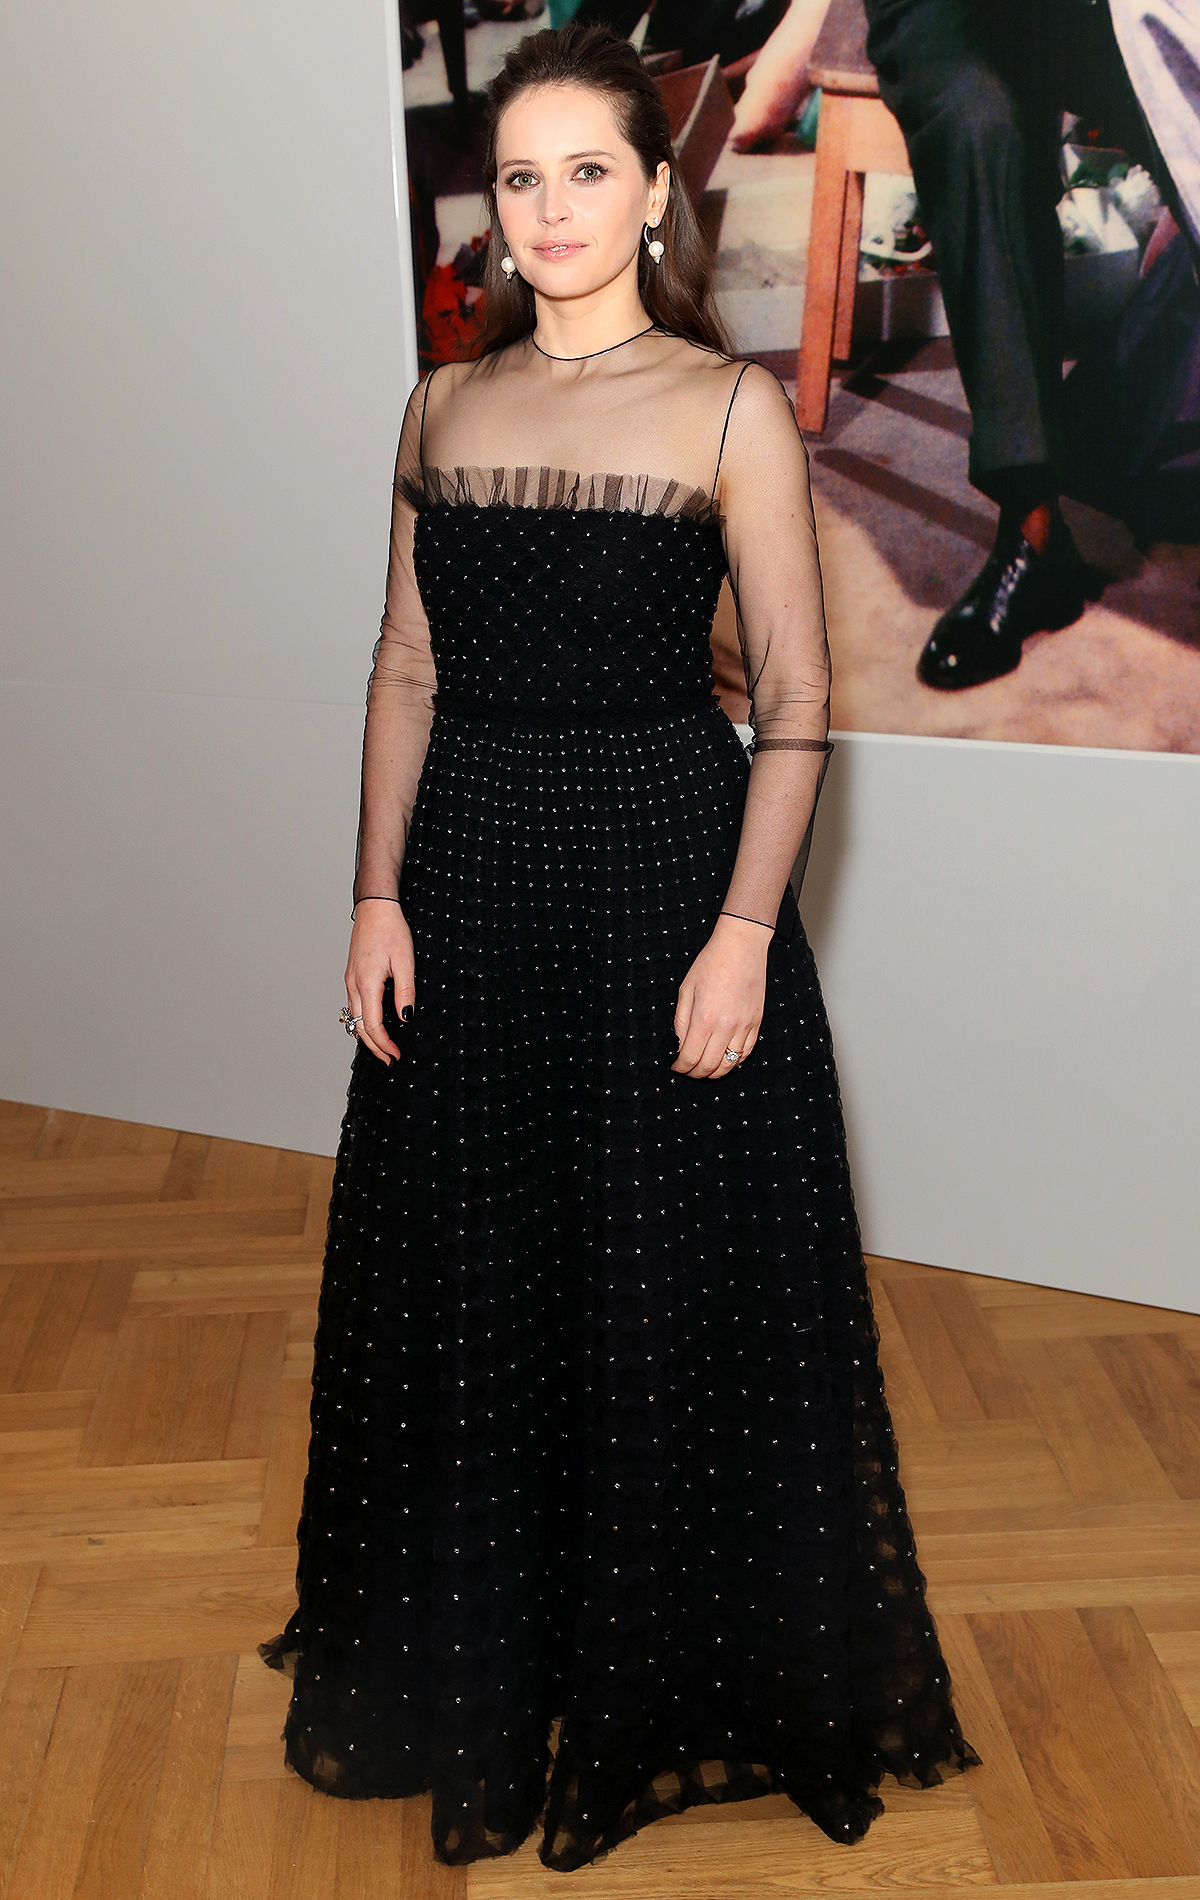 Christian Dior Exhibition At The V&A - Opening Gala Dinner